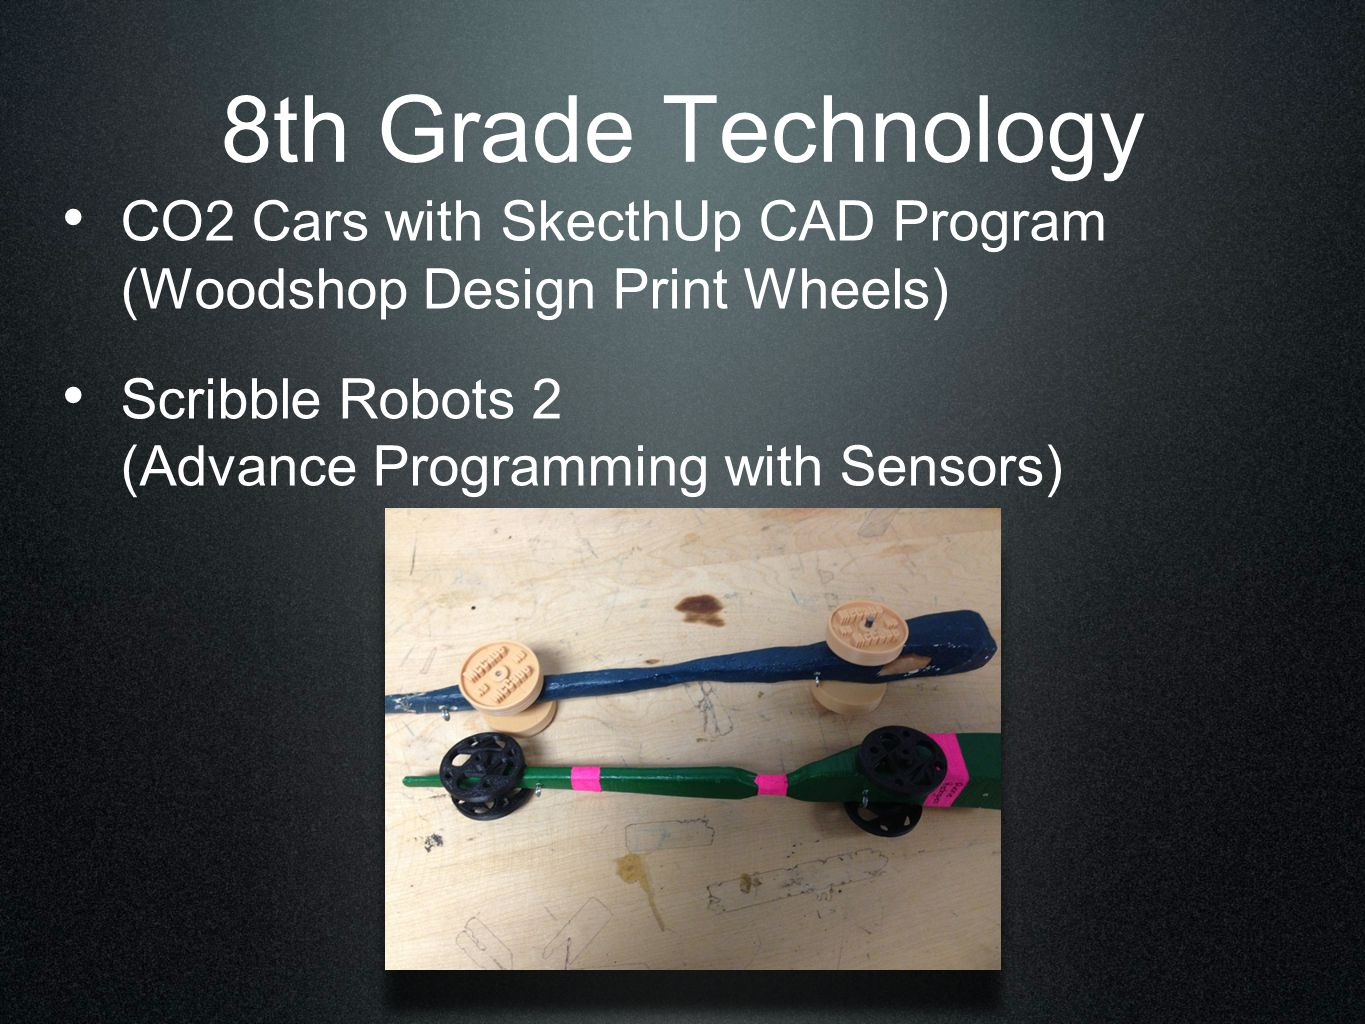 8th Grade Technology CO2 Cars with SkecthUp CAD Program (Woodshop Design Print Wheels) Scribble Robots 2 (Advance Programming with Sensors)